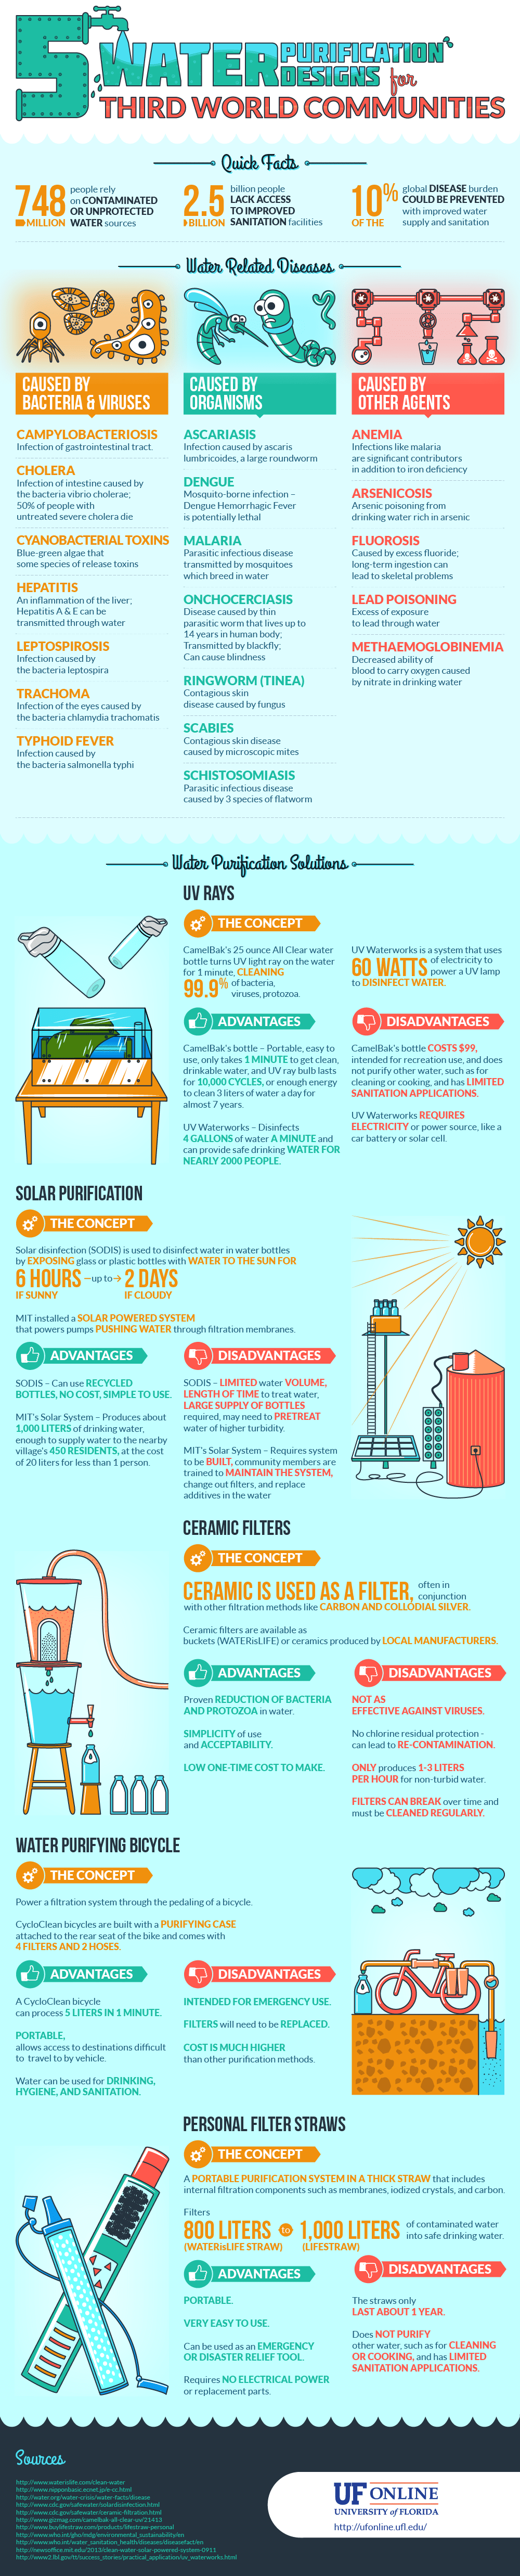 Water Purification Infographic